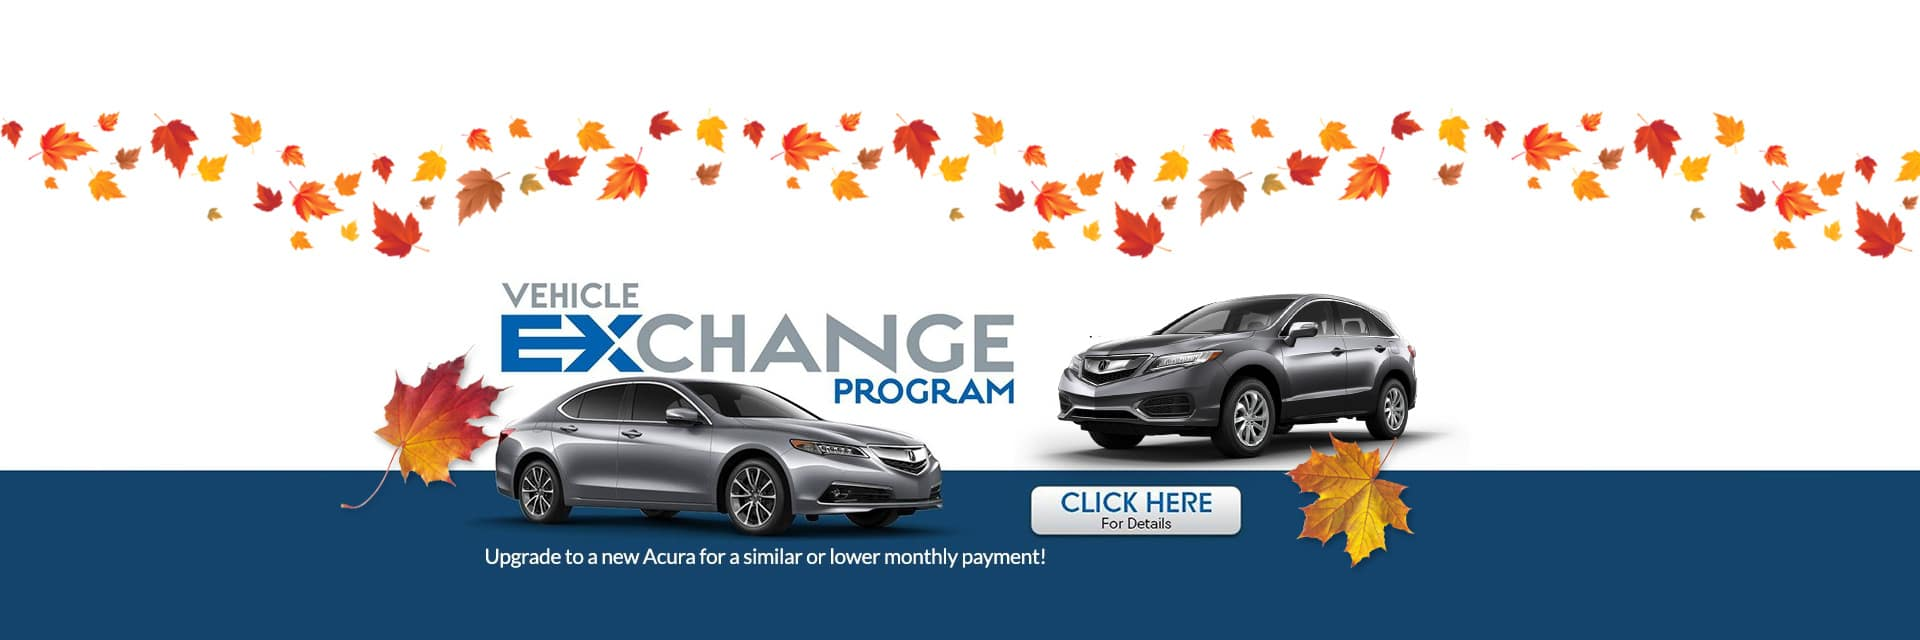 vehicle exchange program